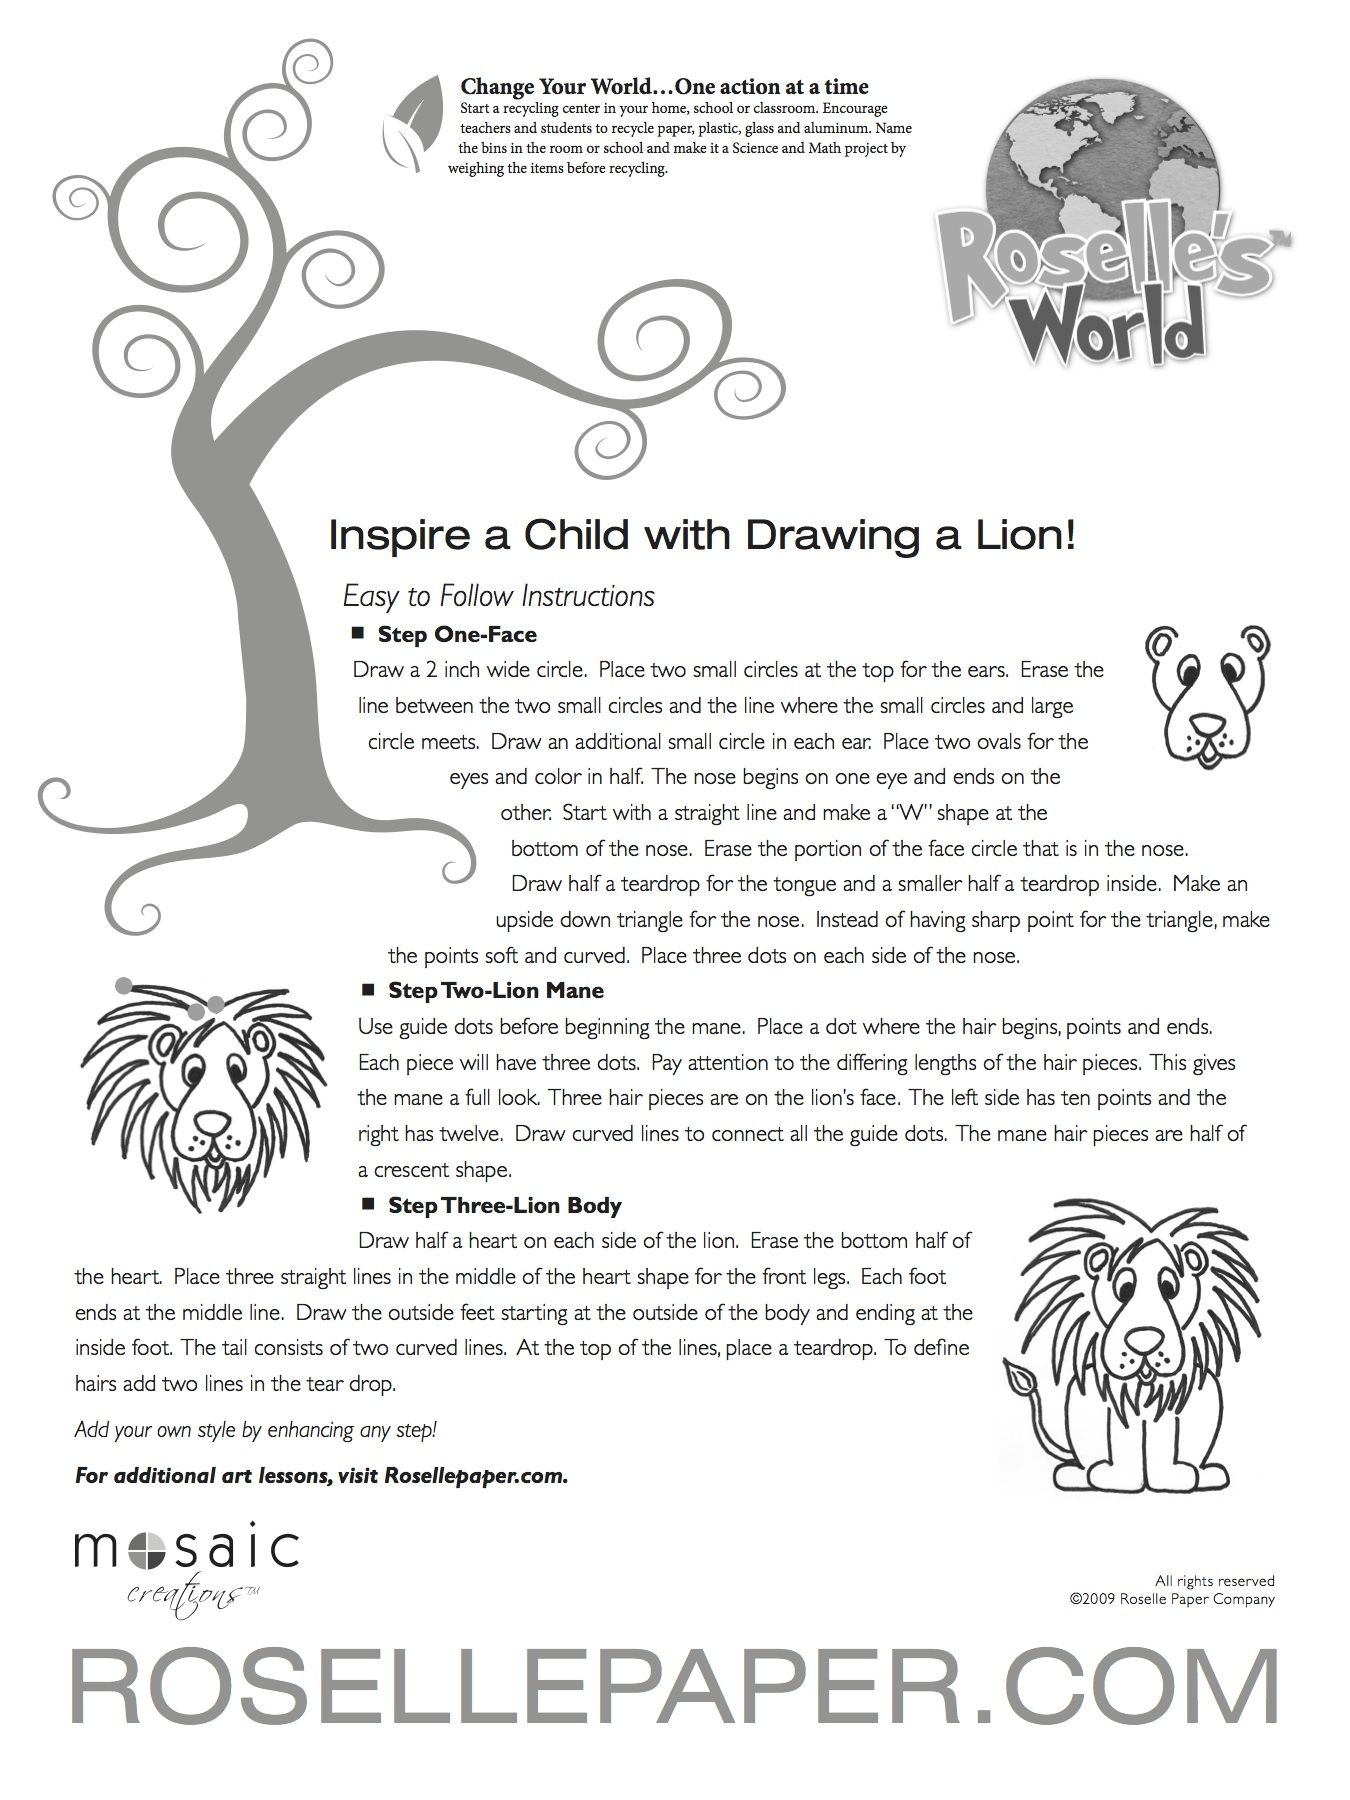 Drawing A Lion Is Easy Thanks To These Instructions